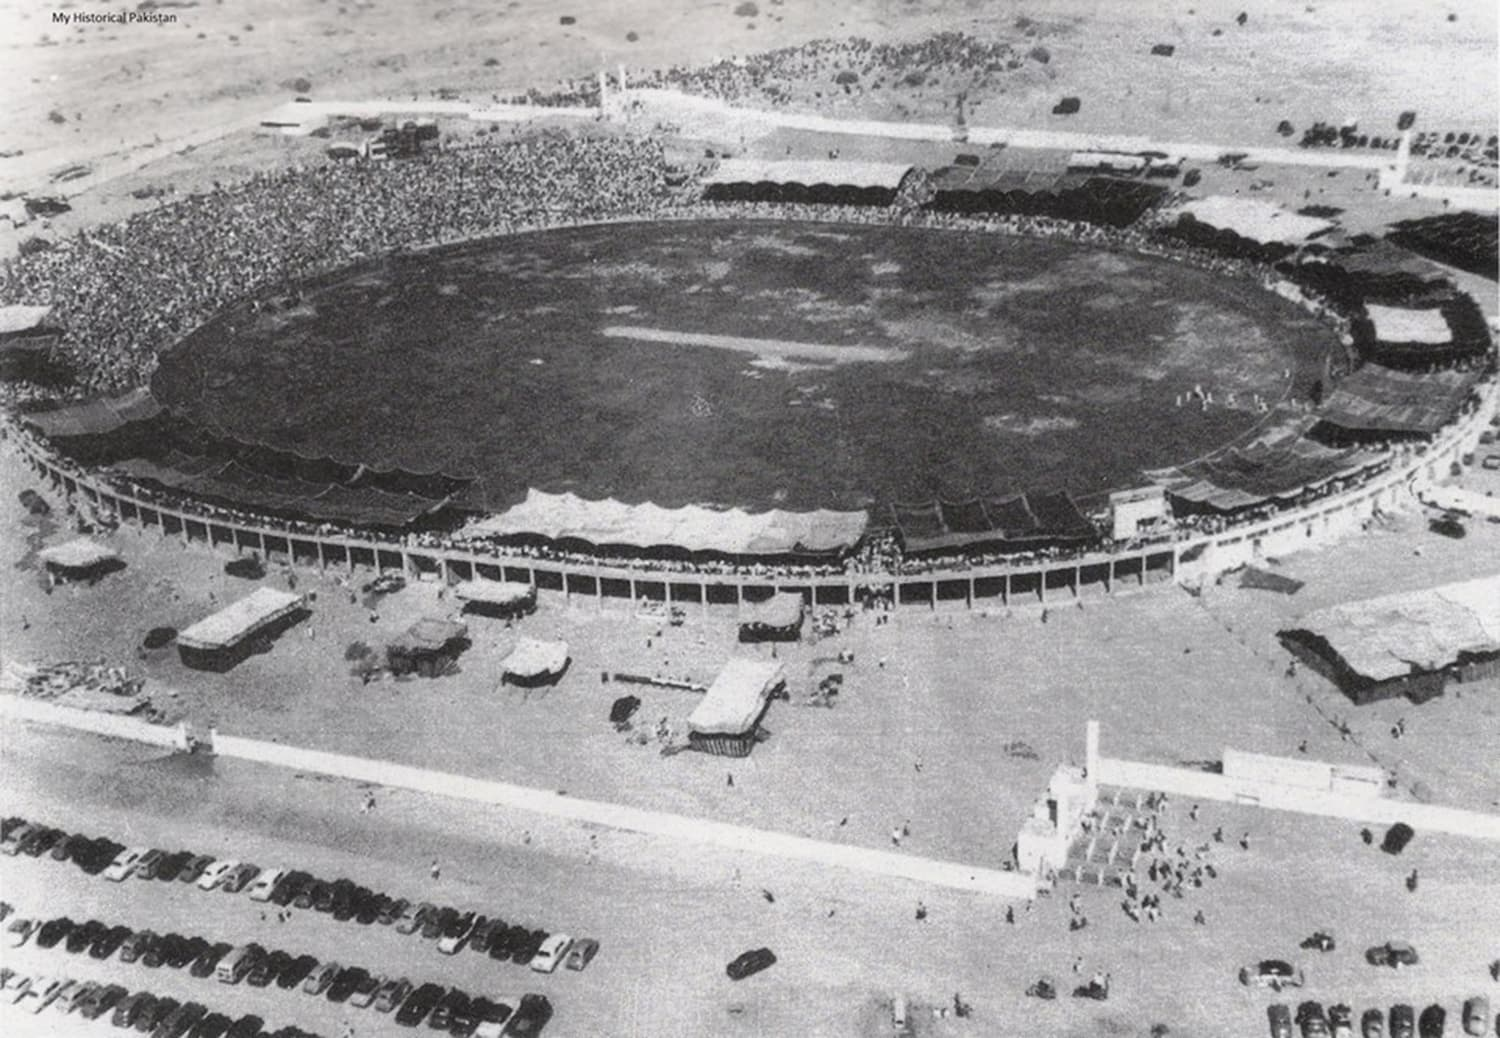 1955: The first Test at National Stadium. (Pic: Rafique Ajmal)